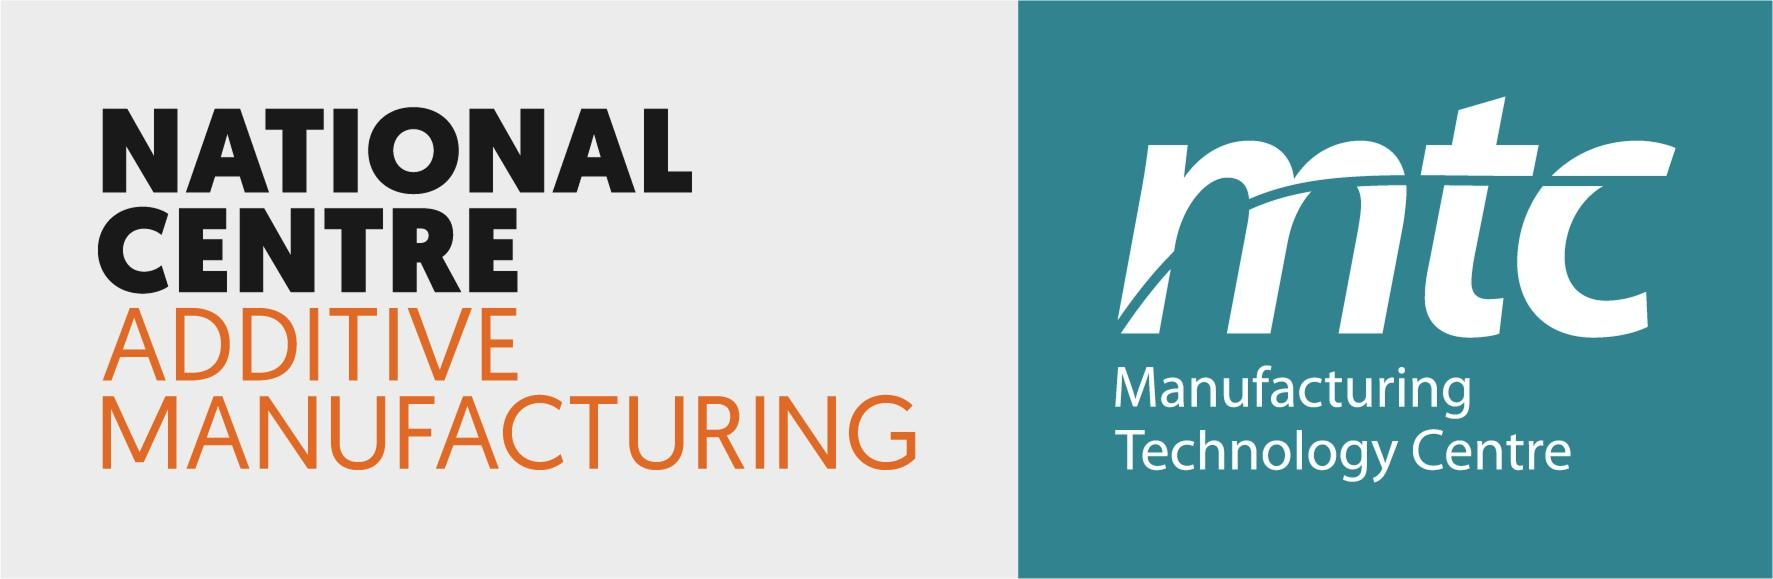 THE MANUFACTURING TECHNOLOGY CENTRE LIMITED